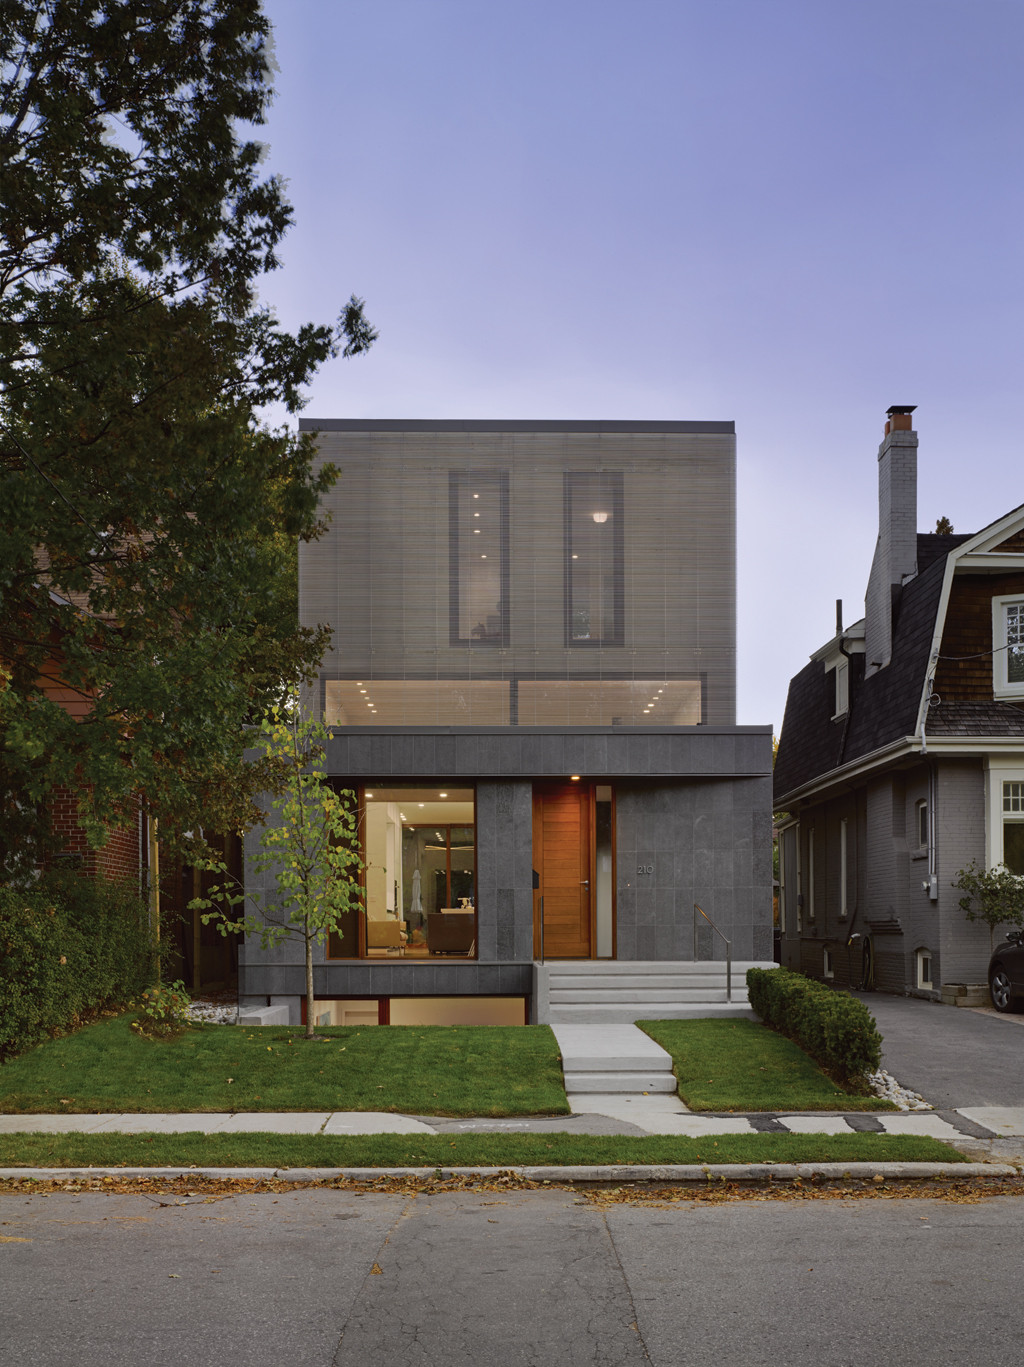 Counterpoint lofty, light-filled home by Paul Raff Studio Architects-04